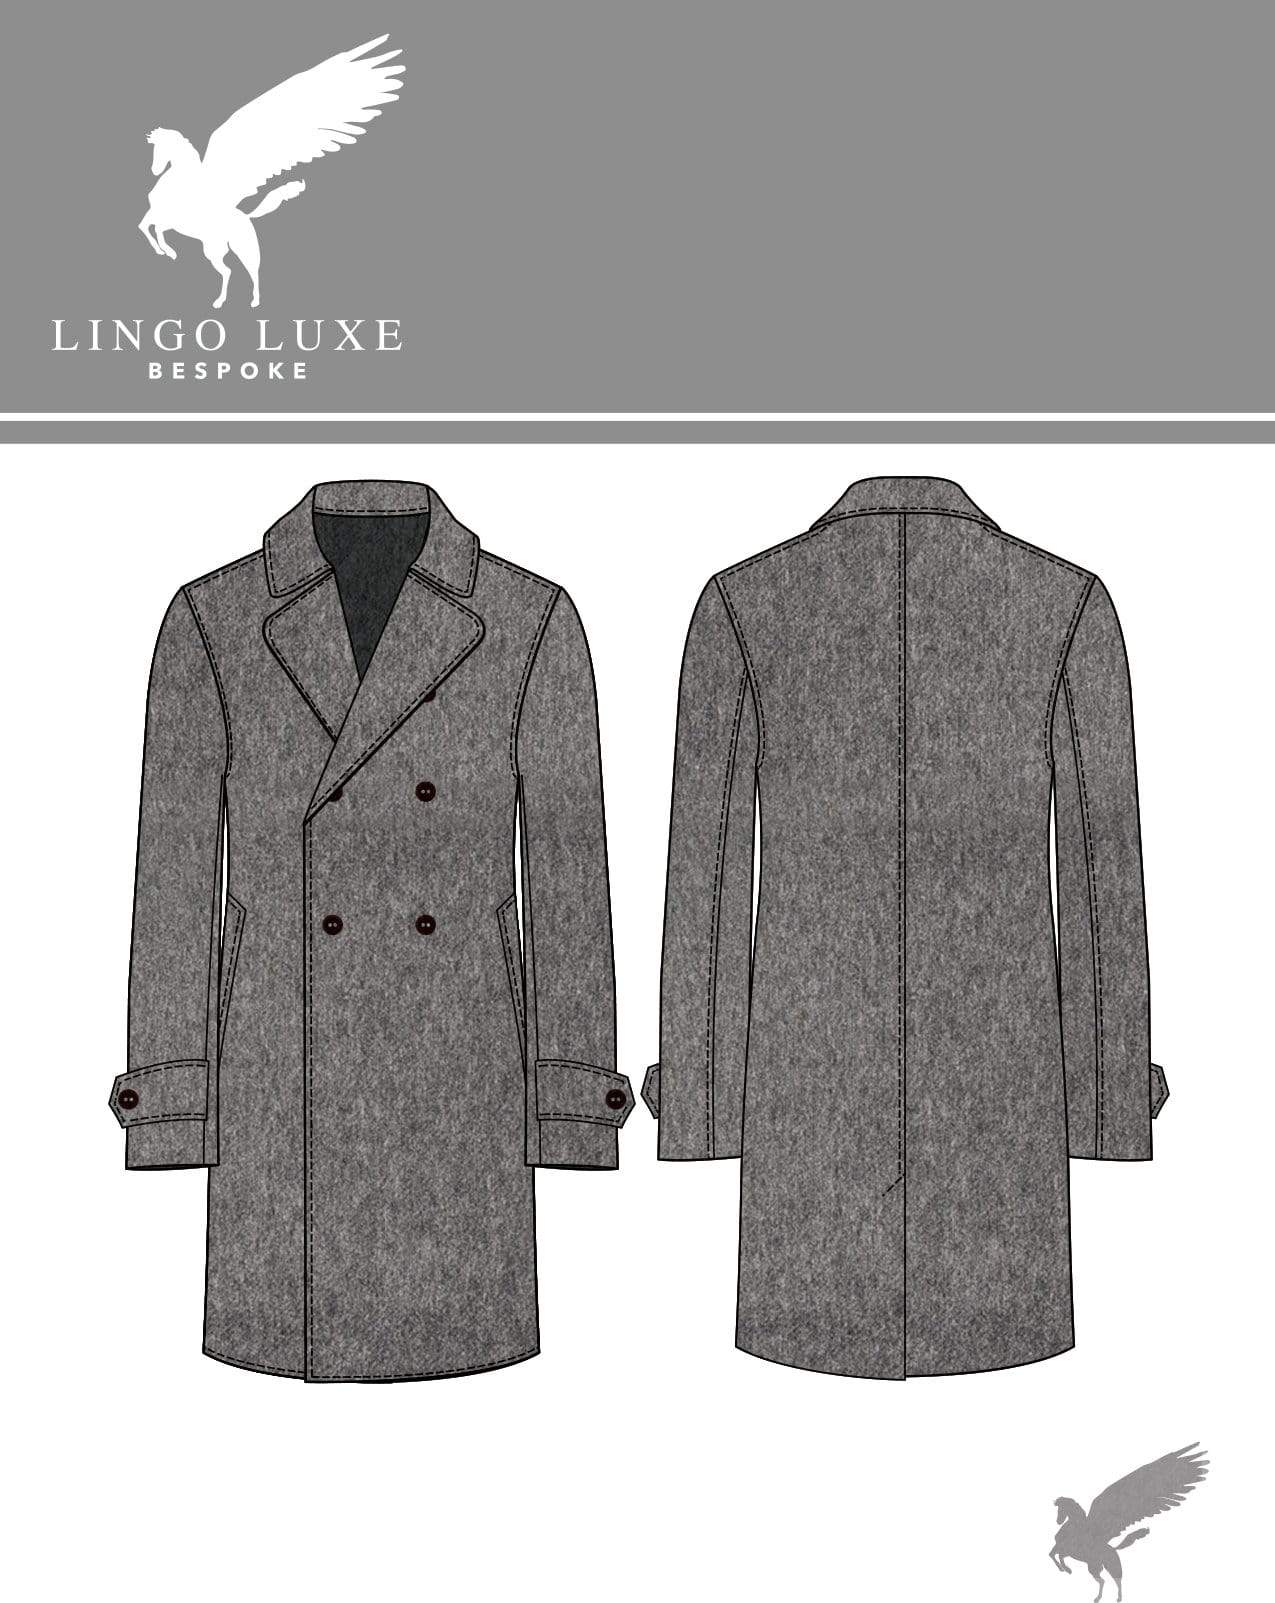 Outerwear | Lingo Luxe The Stately Overcoat | Mouse-Lingo Luxe Bespoke